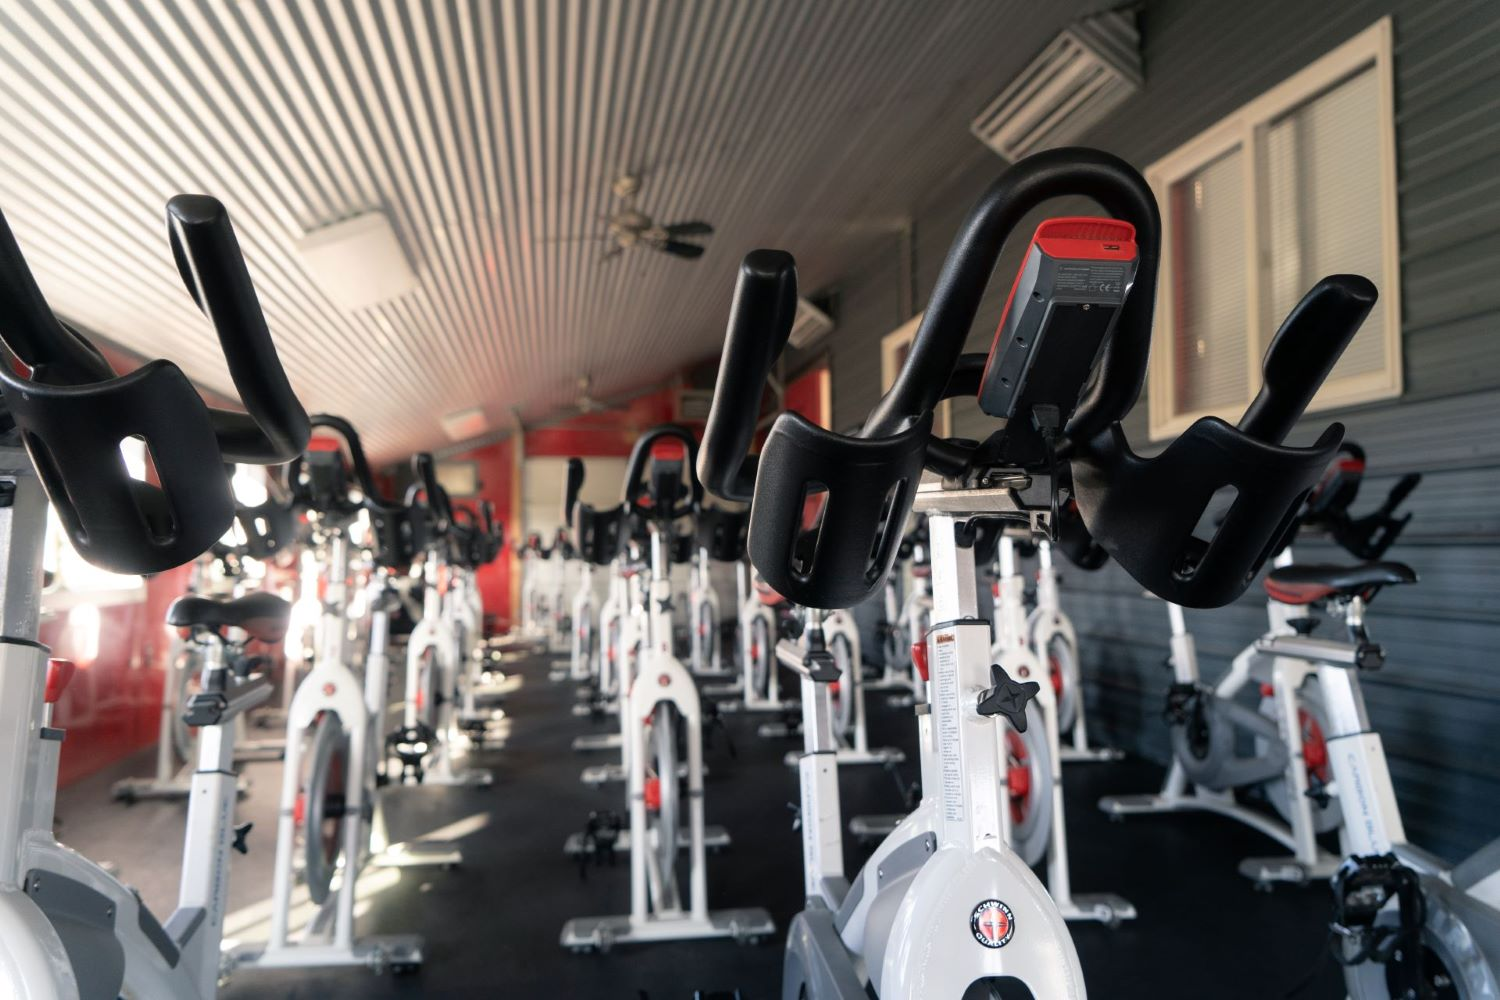 New Spin Bikes 1_1500 x 1000